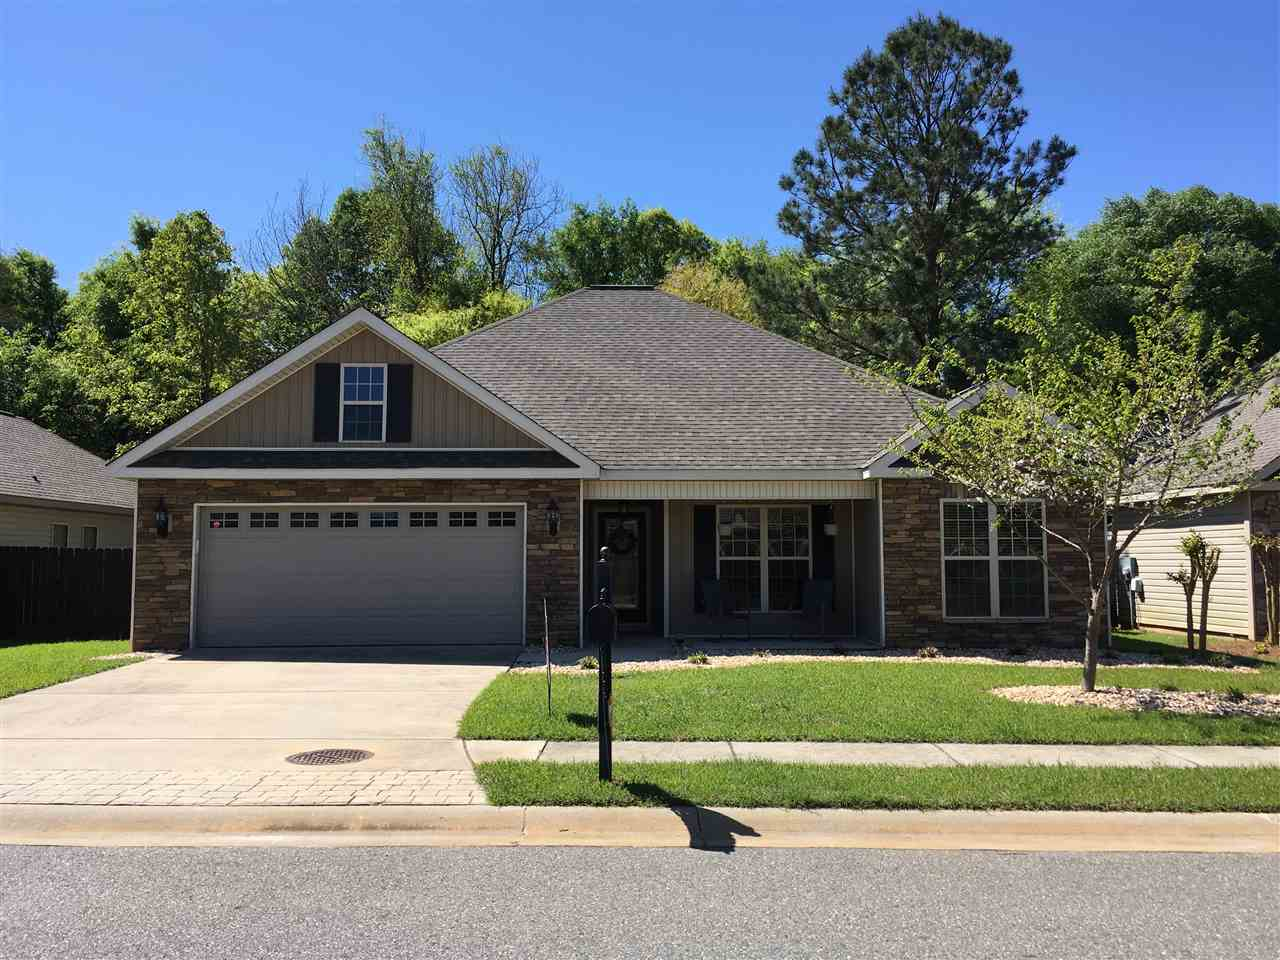 Homes for sale in kathleen ga under 150k for Houses that can be built for under 150k